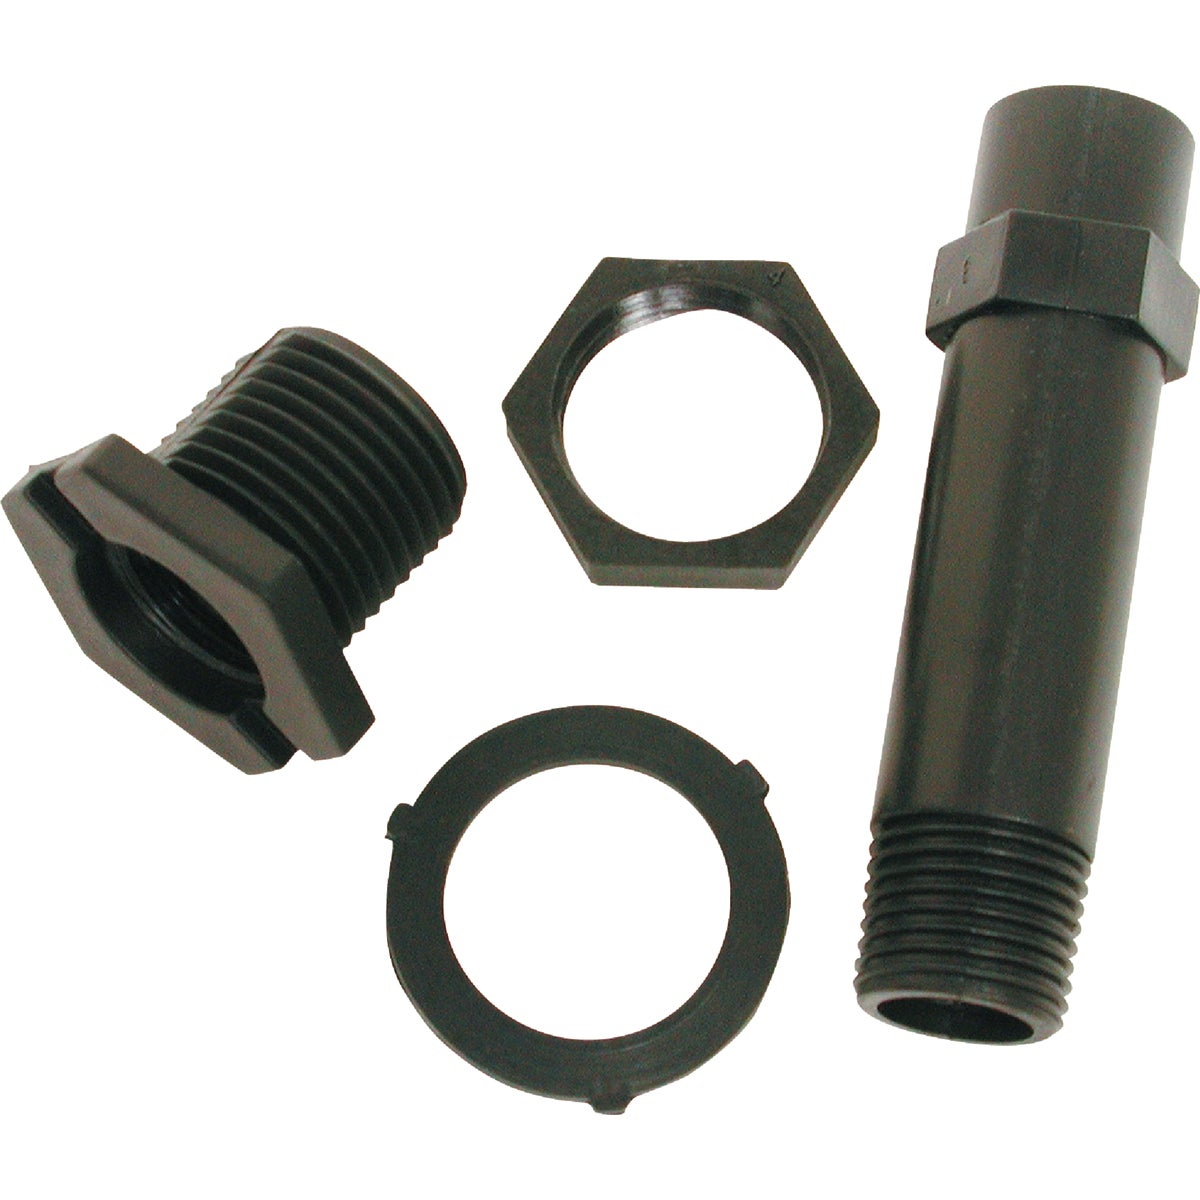 DRAIN & OVERFLOW KIT - 9240 by Dial Manufacturing